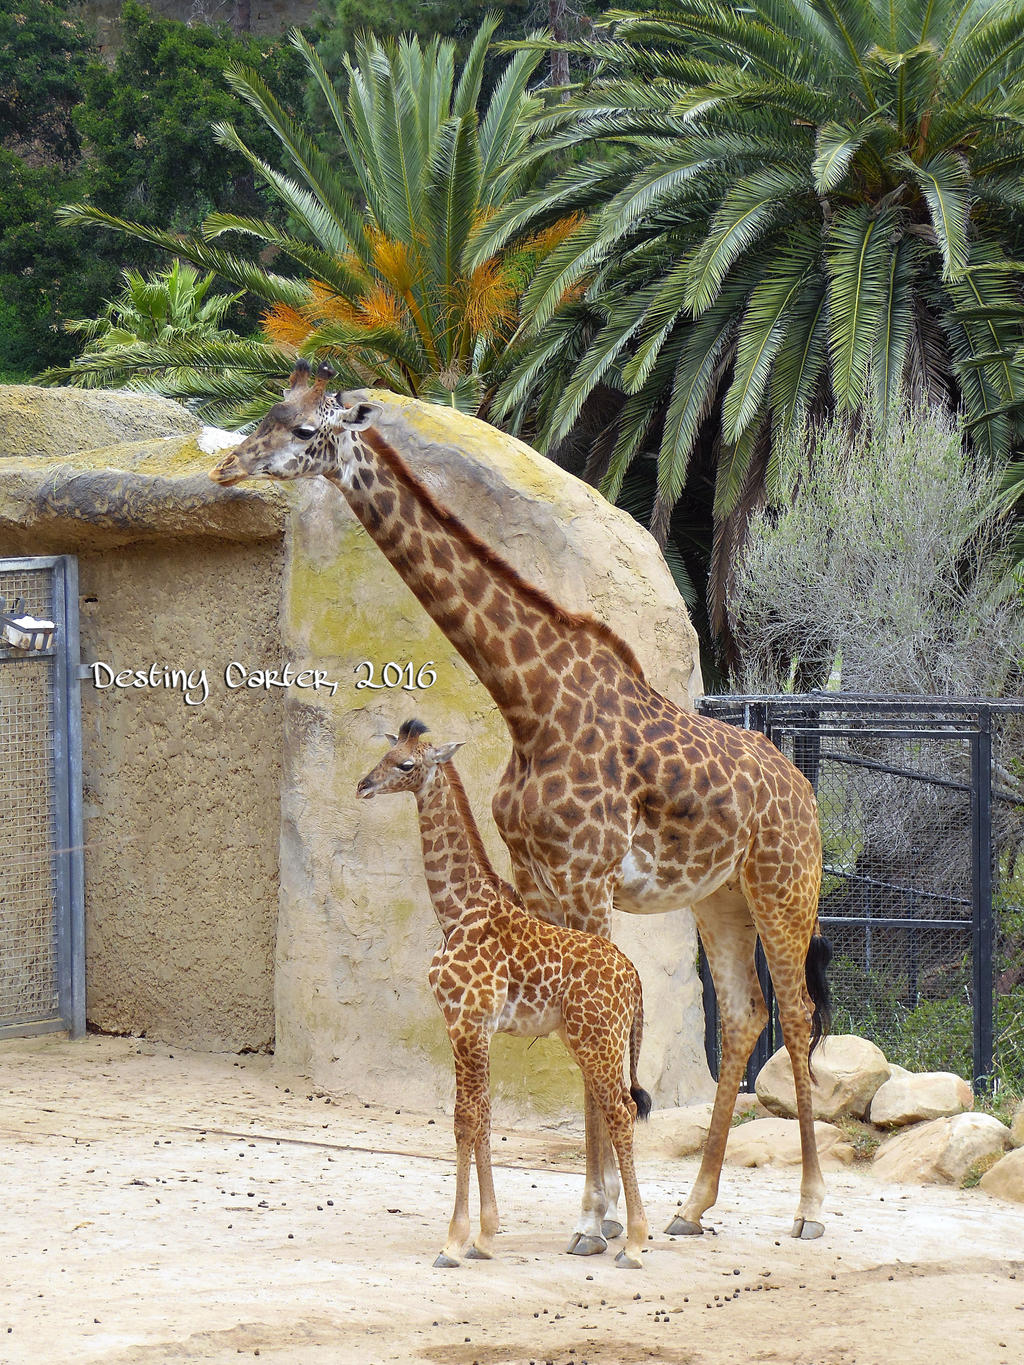 Baby Chad the Giraffe by Destiny-Carter